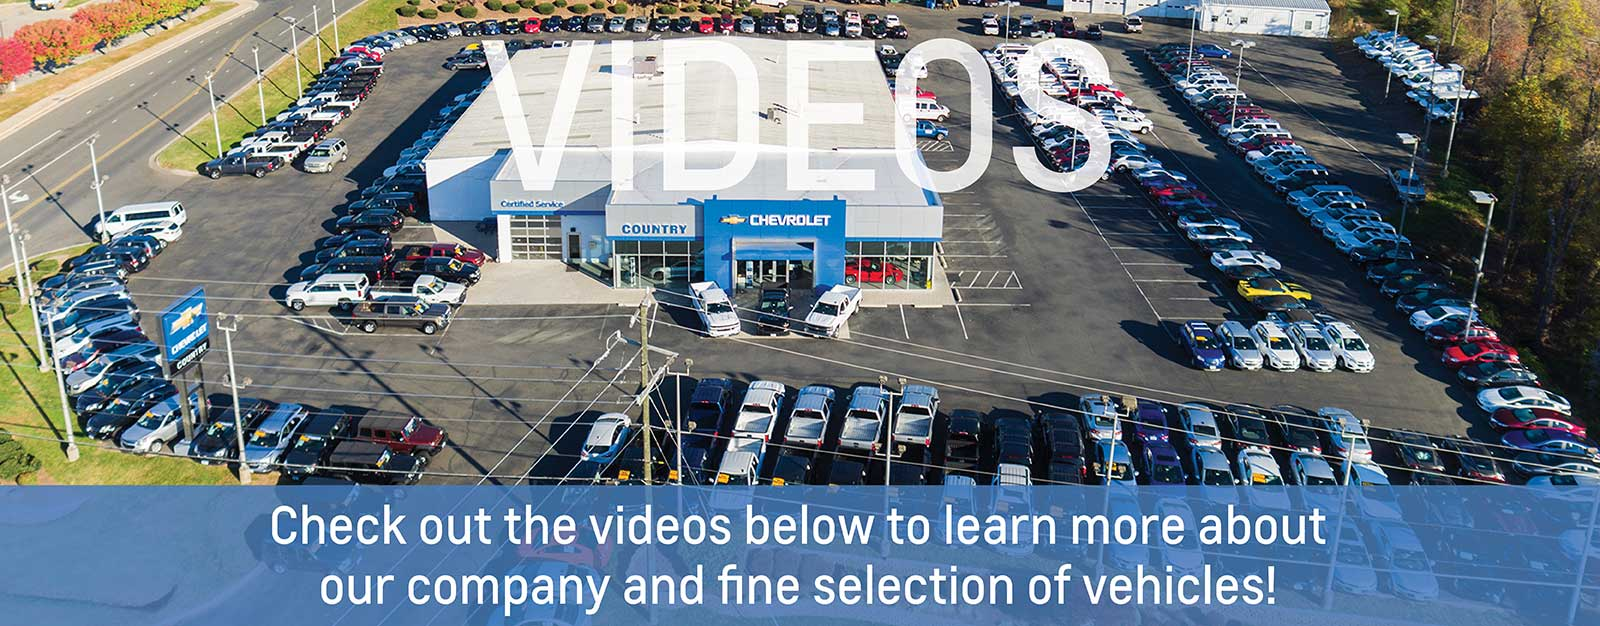 Country Auto Group Serving Warrenton Va Buick Chevrolet Gmc New Used Cars Videos